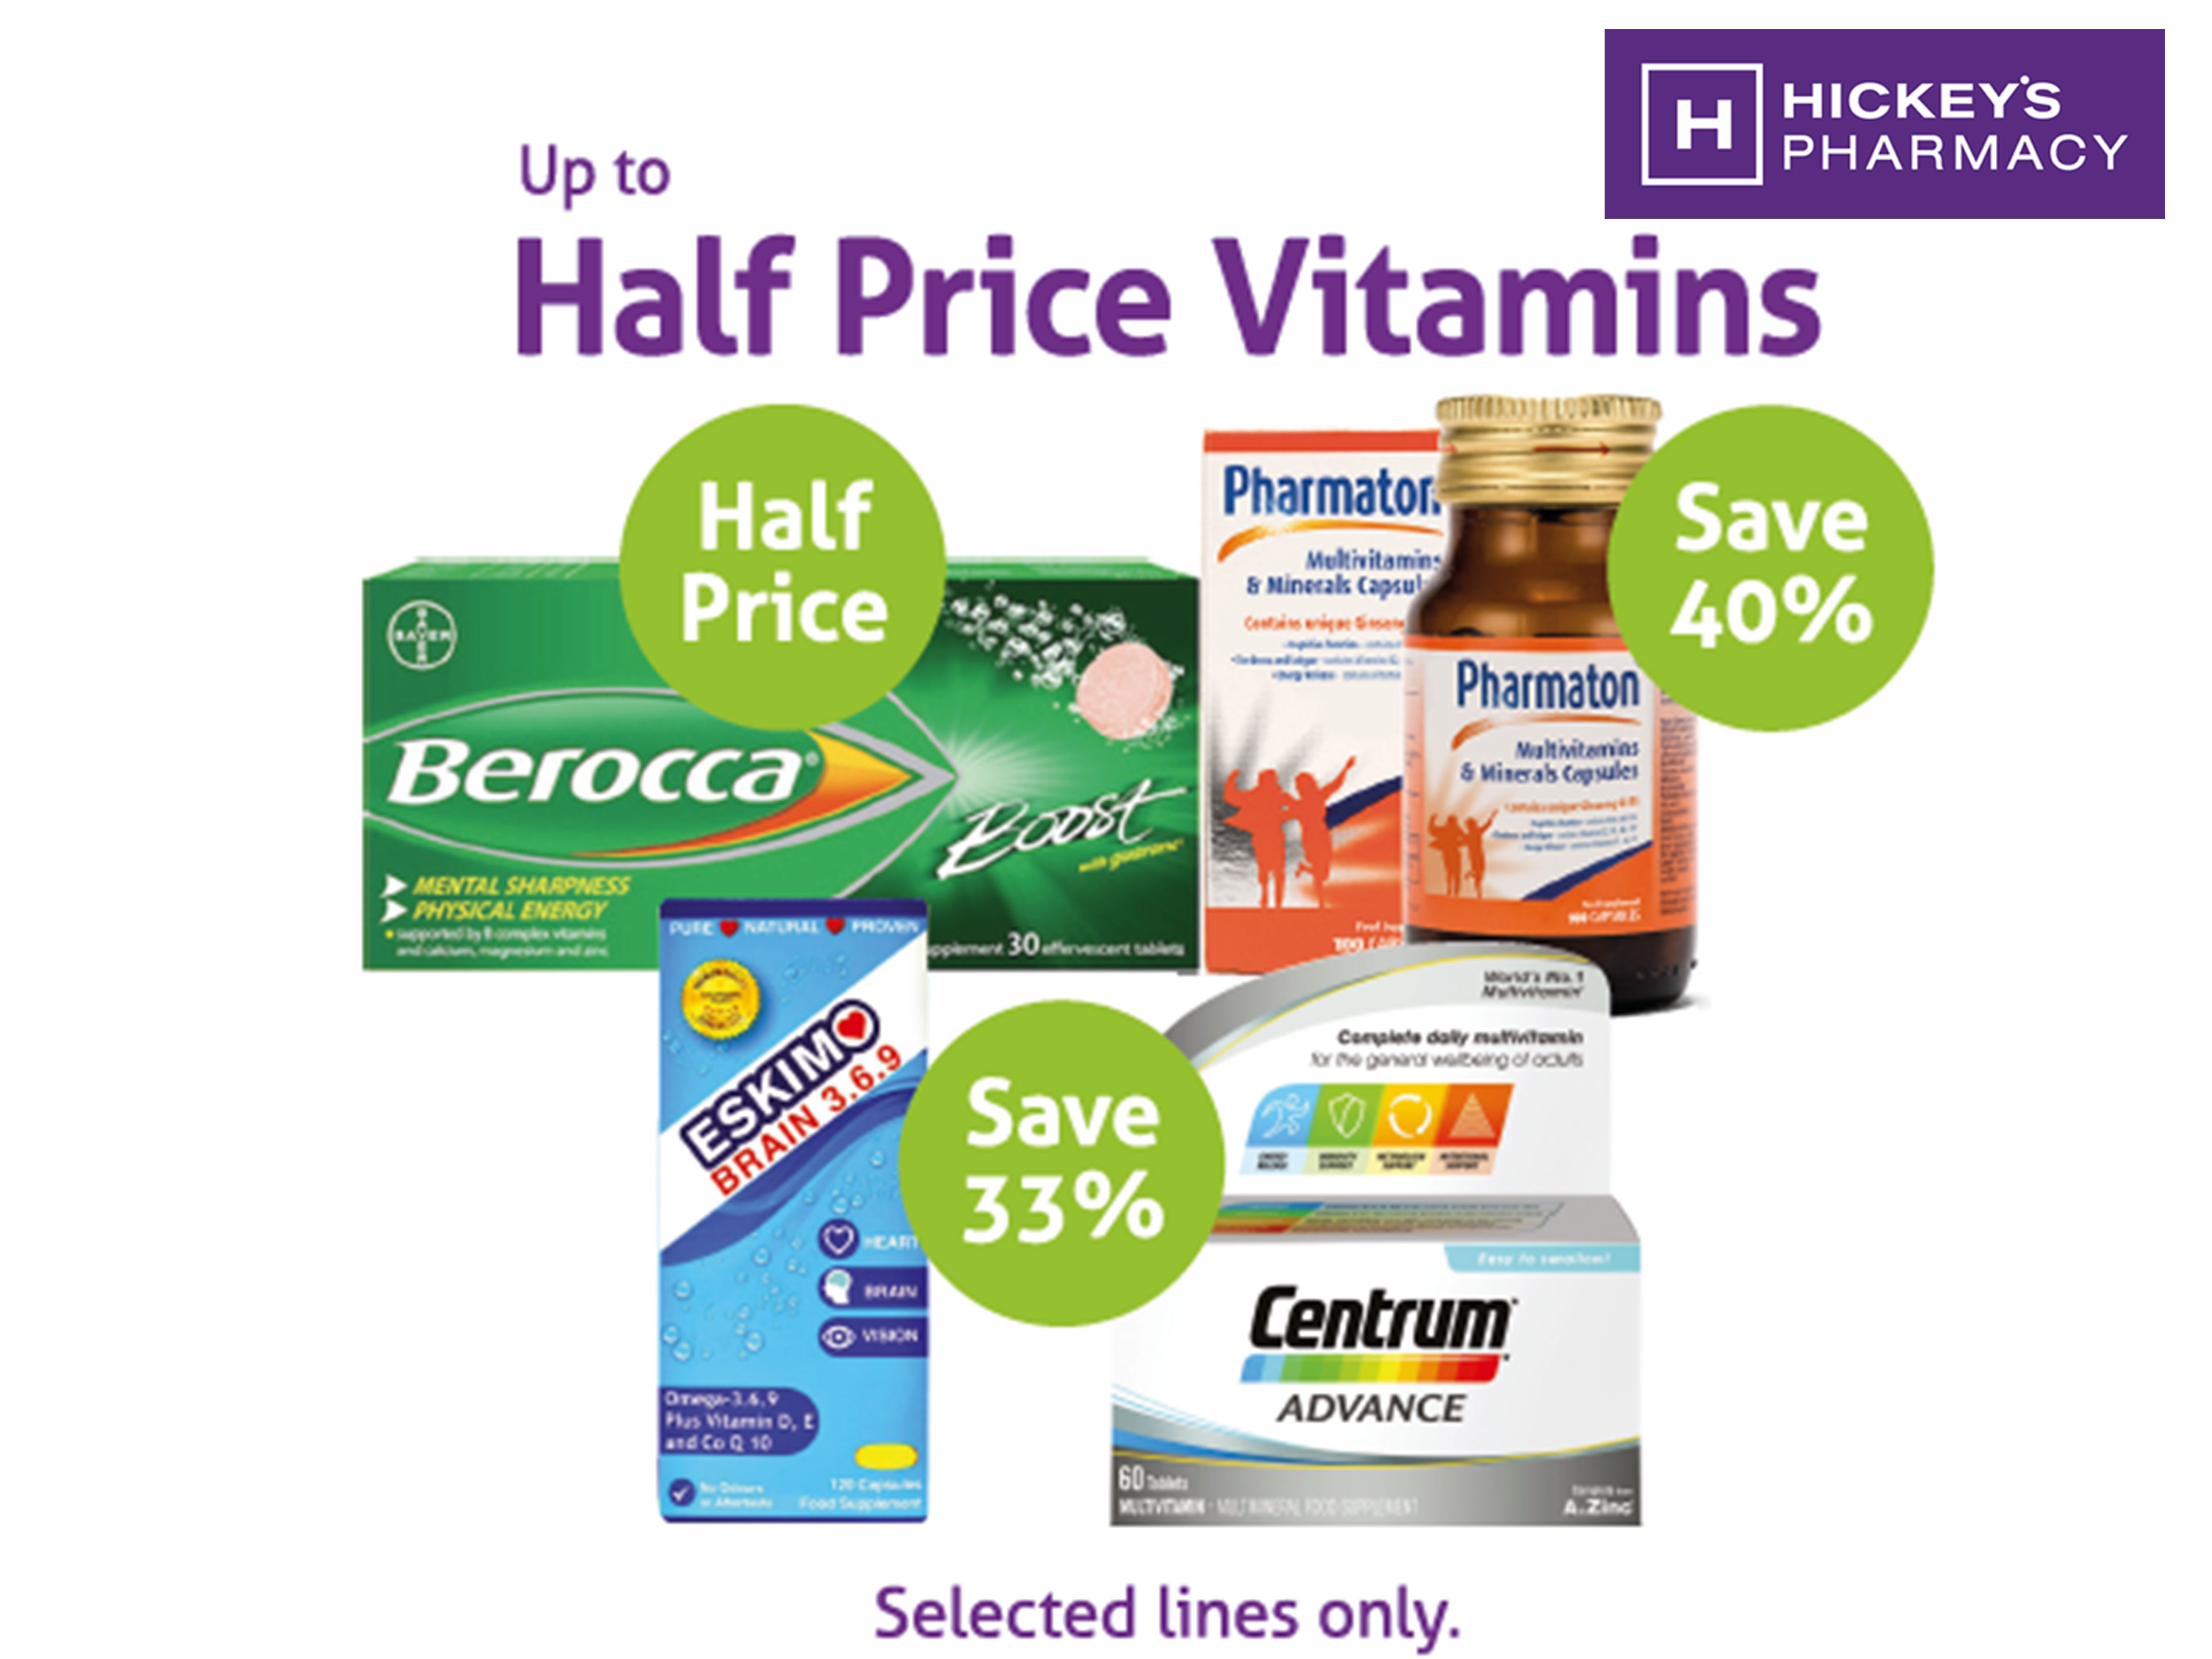 SAVE up to half price on Vitamins & Supplements this month at Hickey's Pharmacy